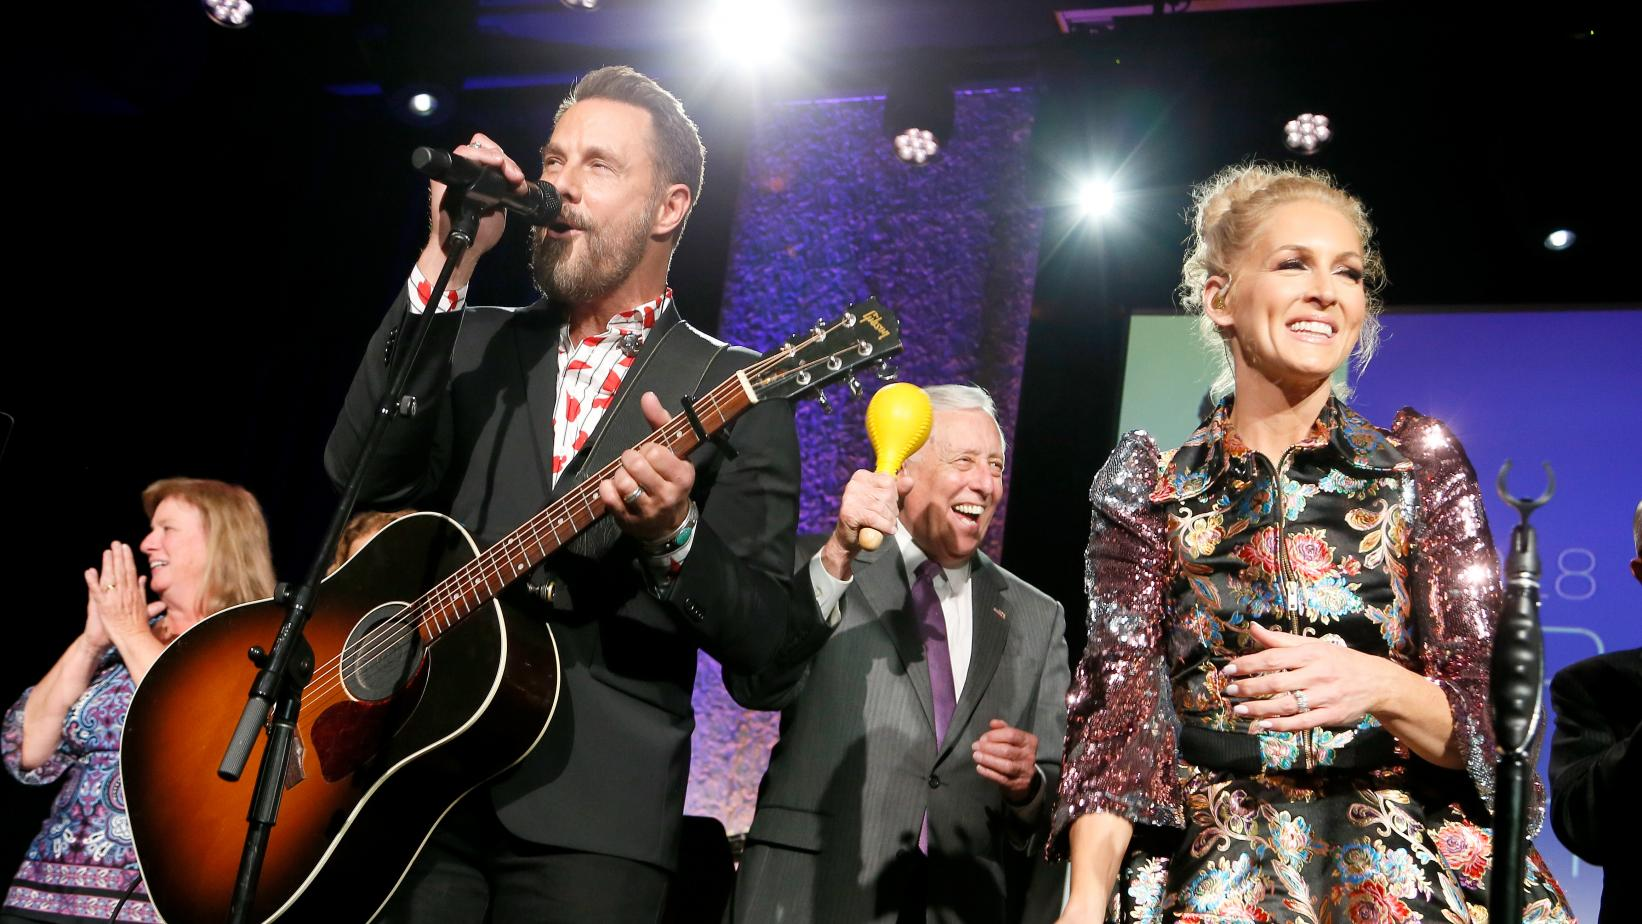 Little Big Town perform at the 2018 GRAMMYs on the Hill Awards